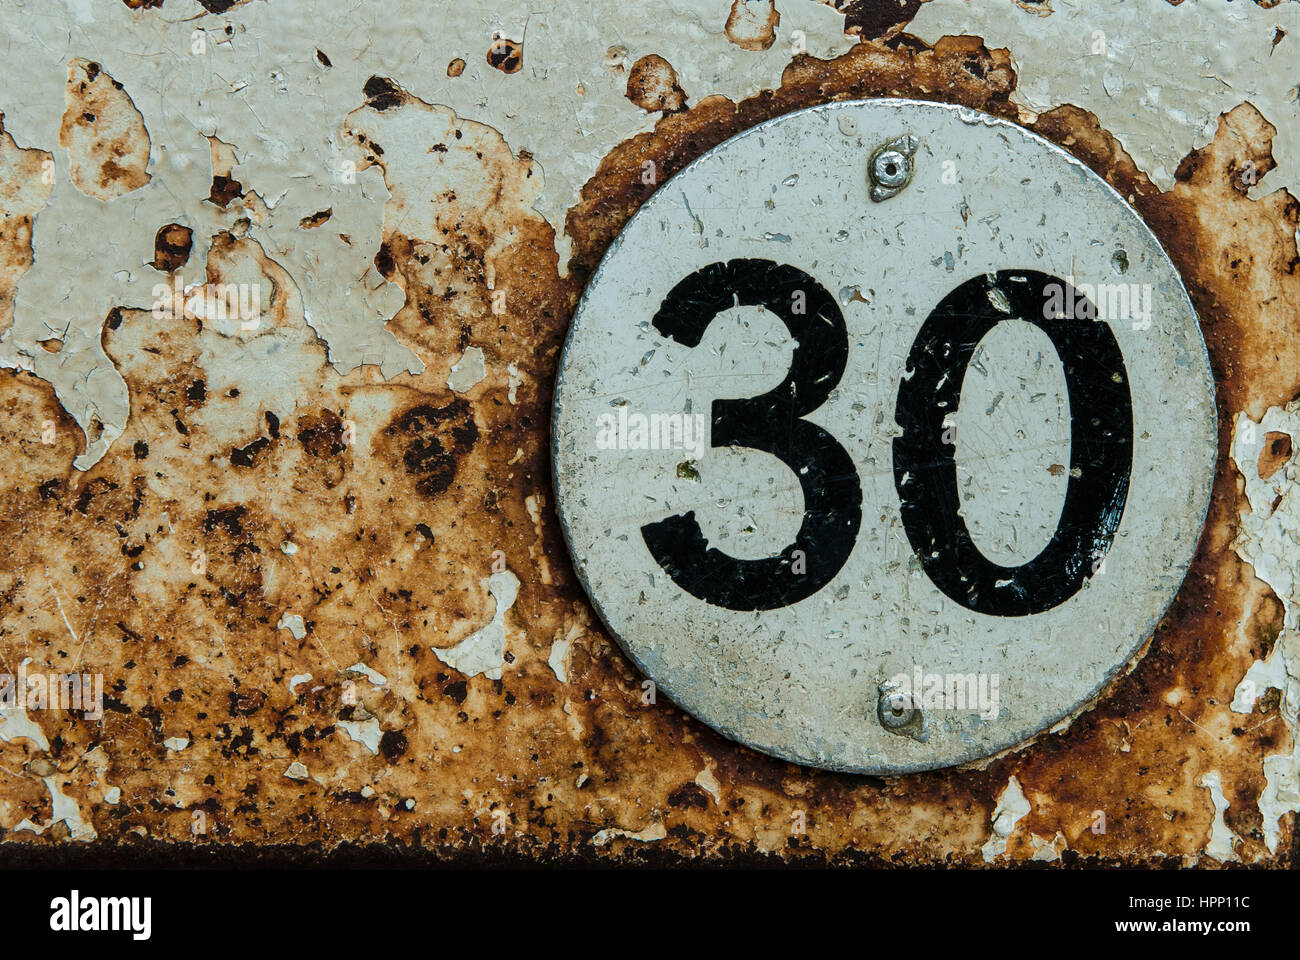 The number 30 on a metals disc with rusty background - Stock Image